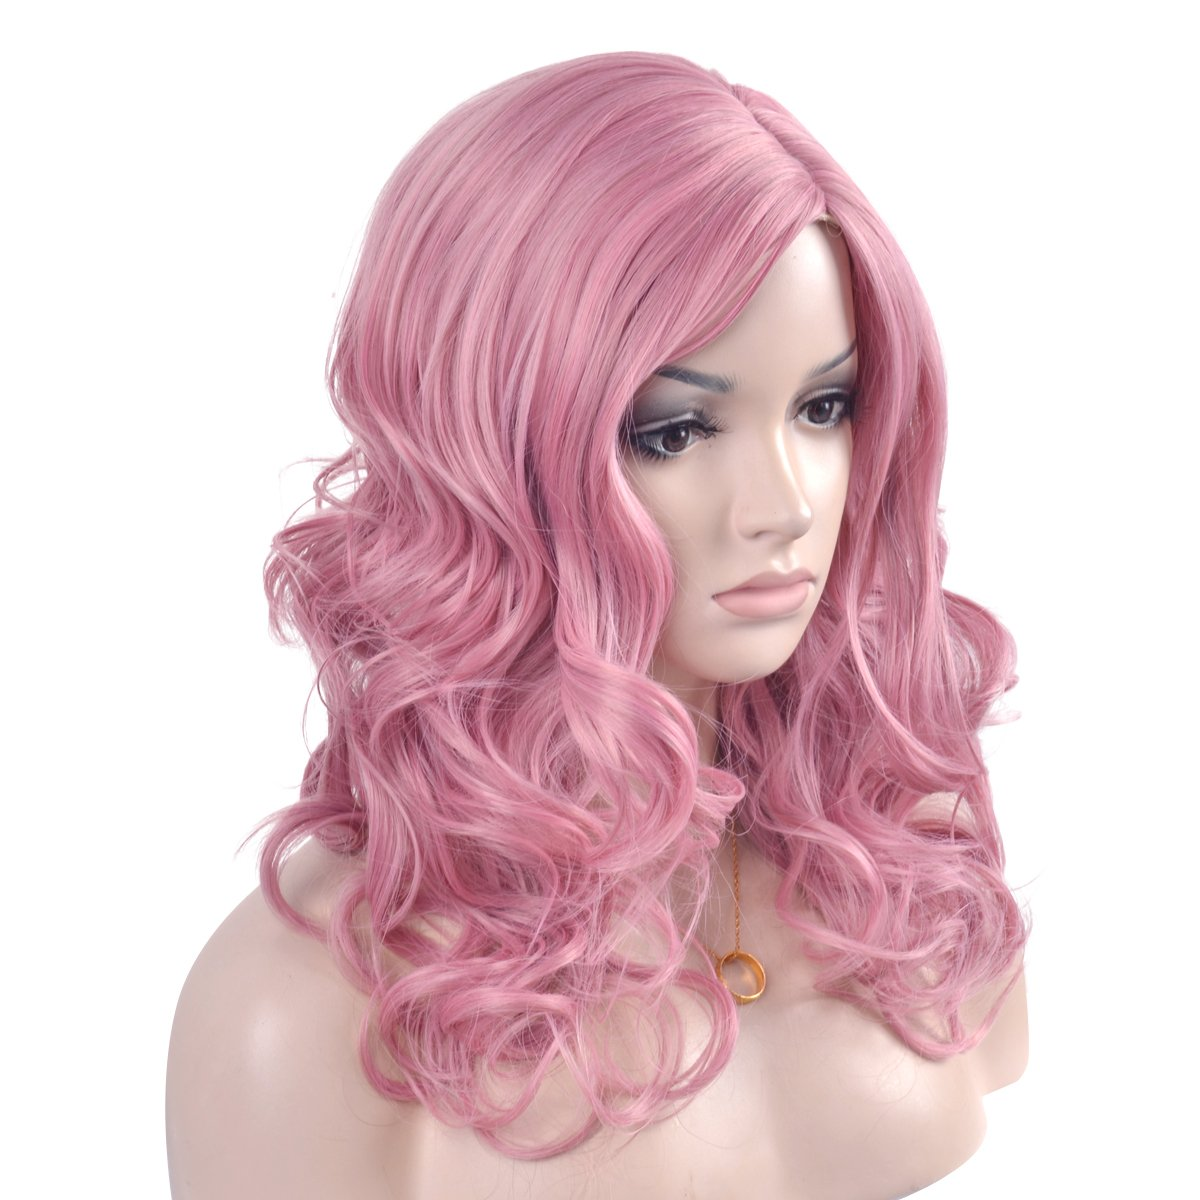 eNilecor Long Pink Wavy Curly Wigs Women Charming Synthetic Heat Resistant Cosplay Hair Wig (20\